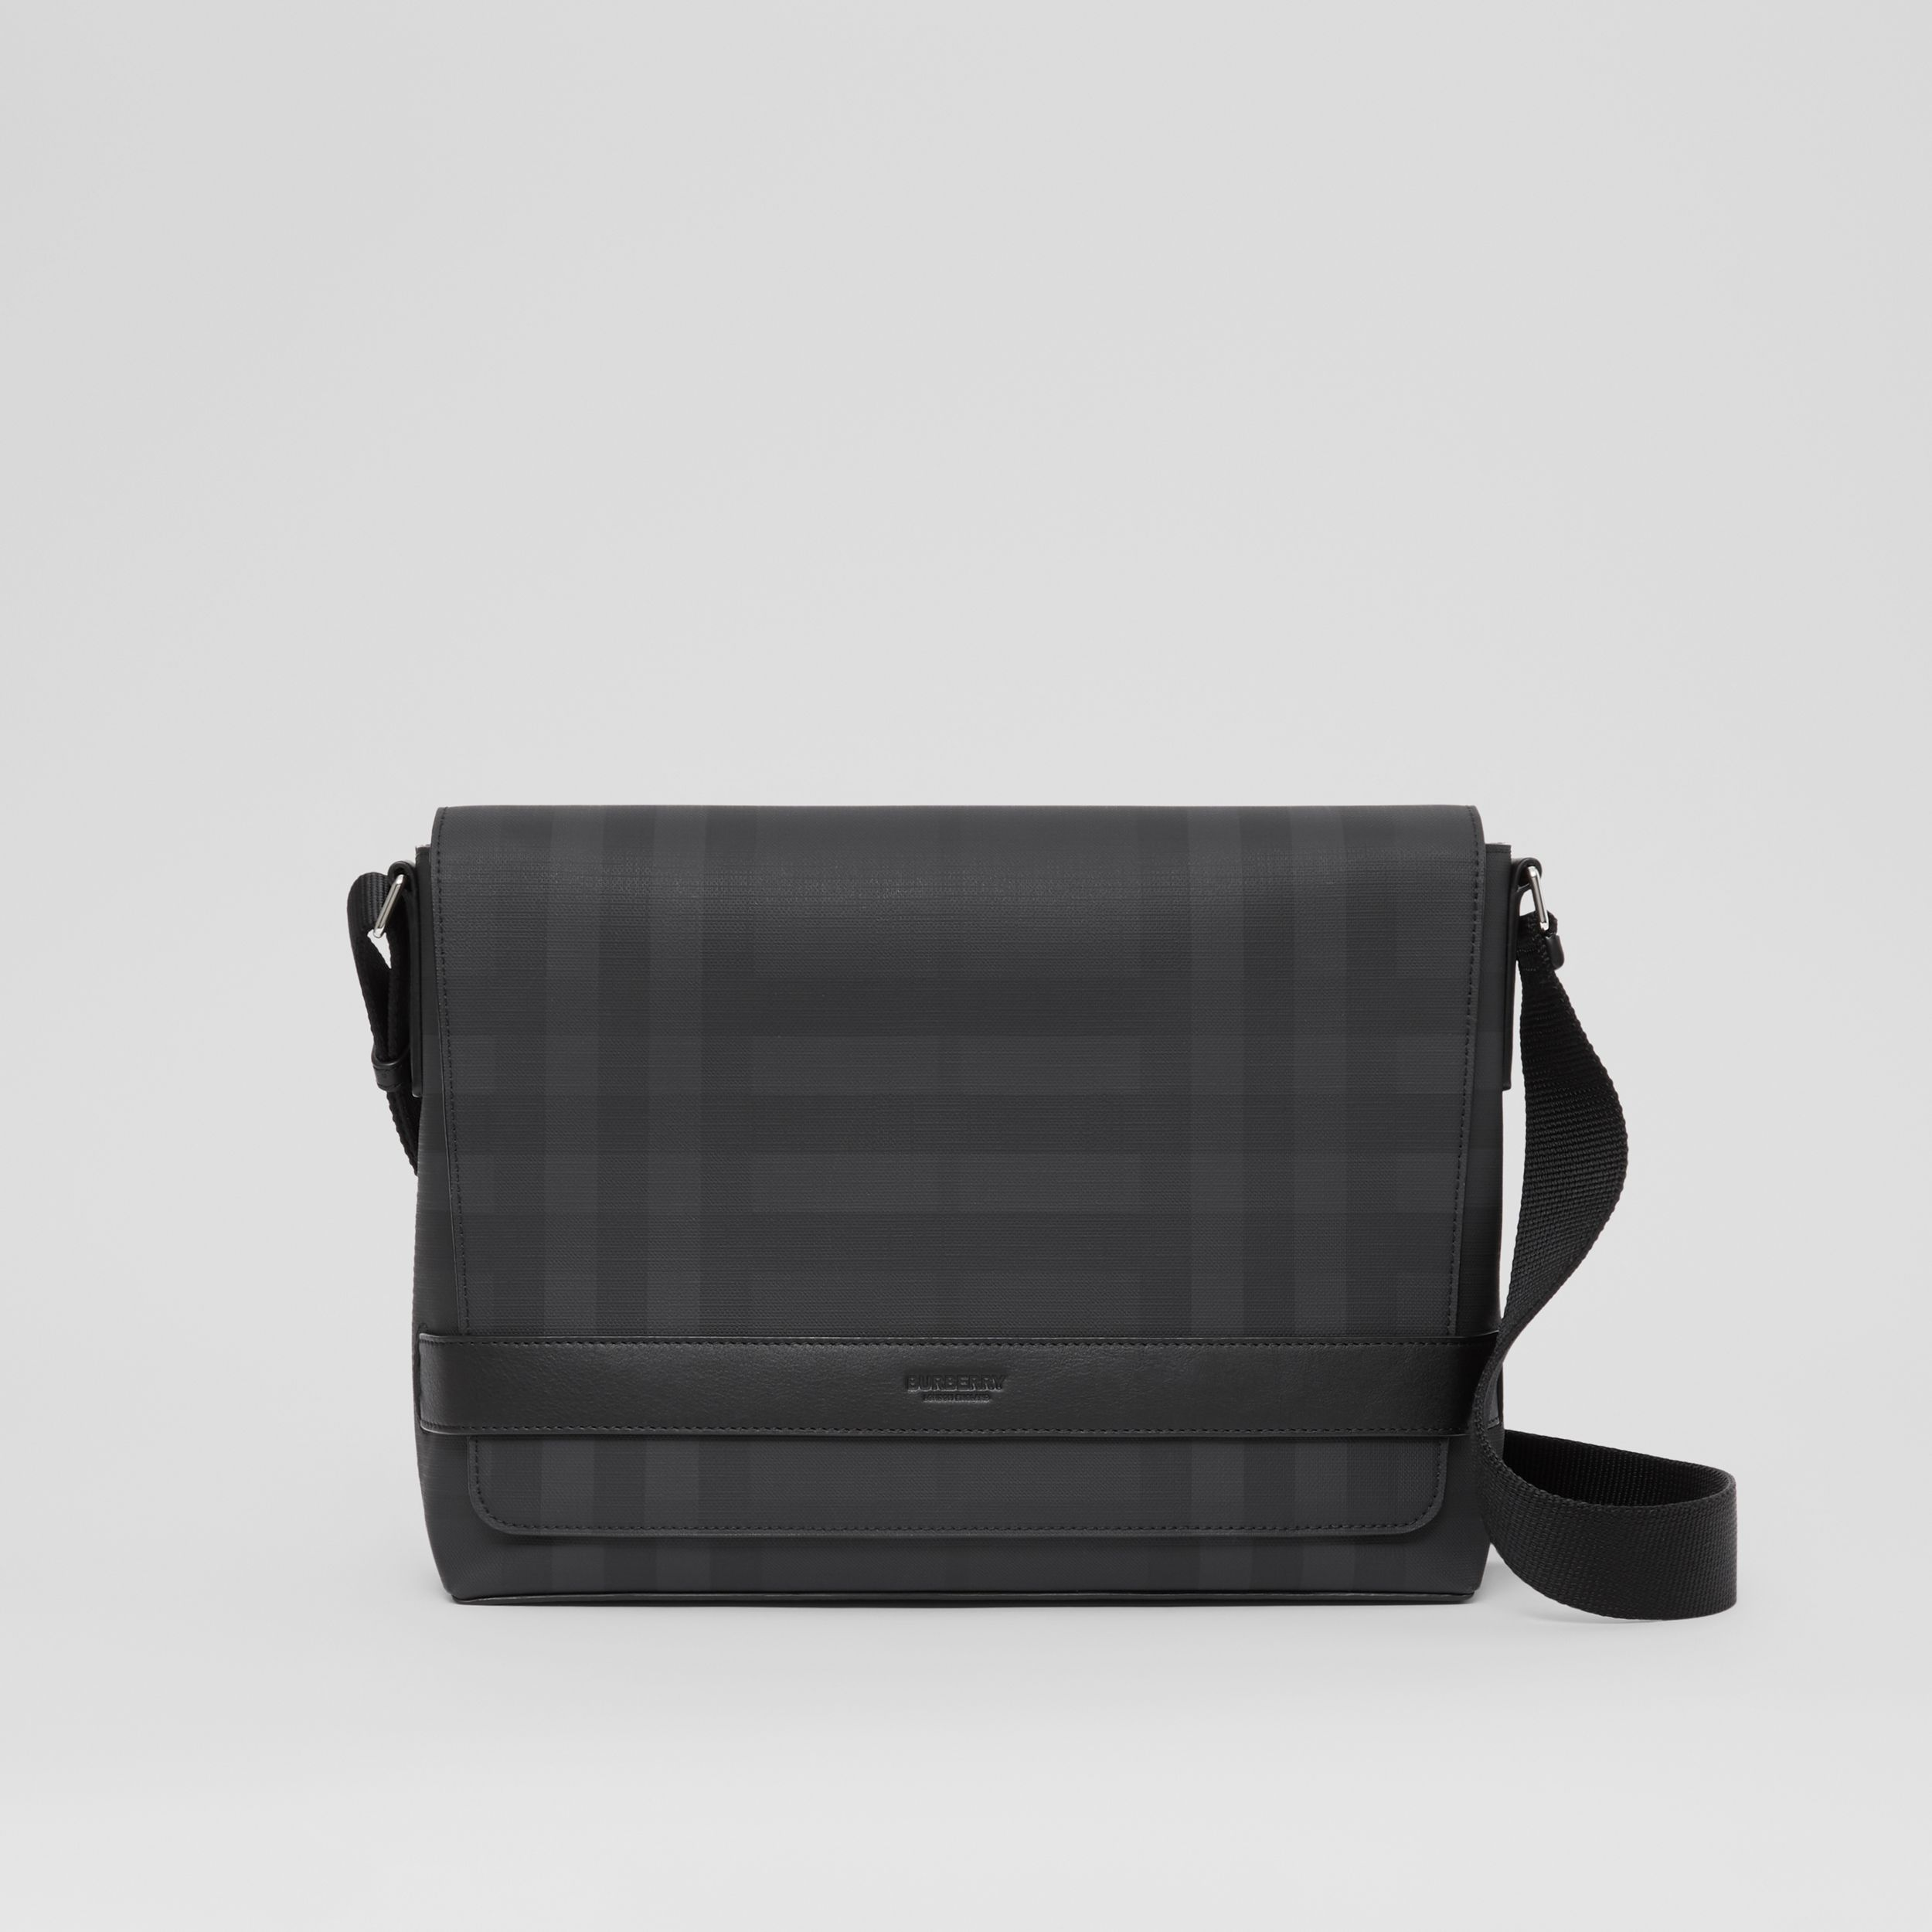 London Check and Leather Messenger Bag in Dark Charcoal - Men | Burberry - 1